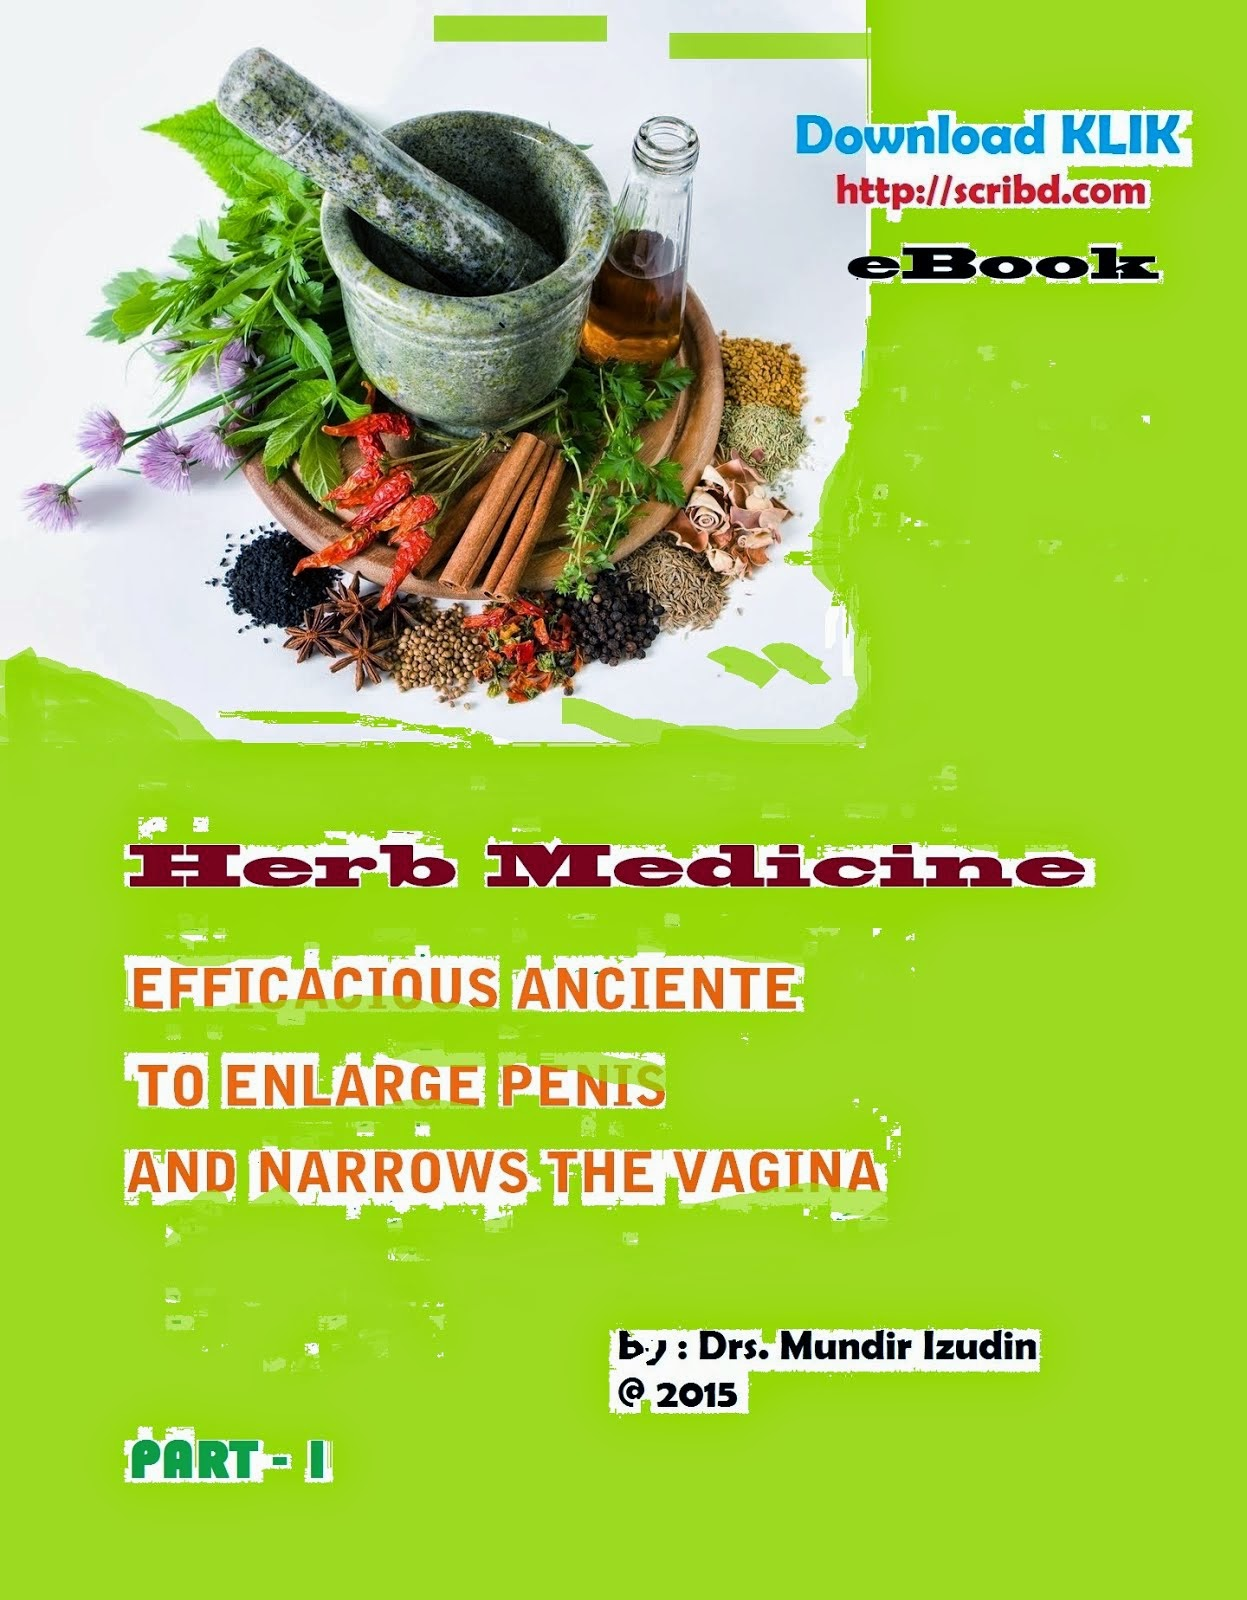 eBook Complete MOTIVATION & HERB MEDICINE